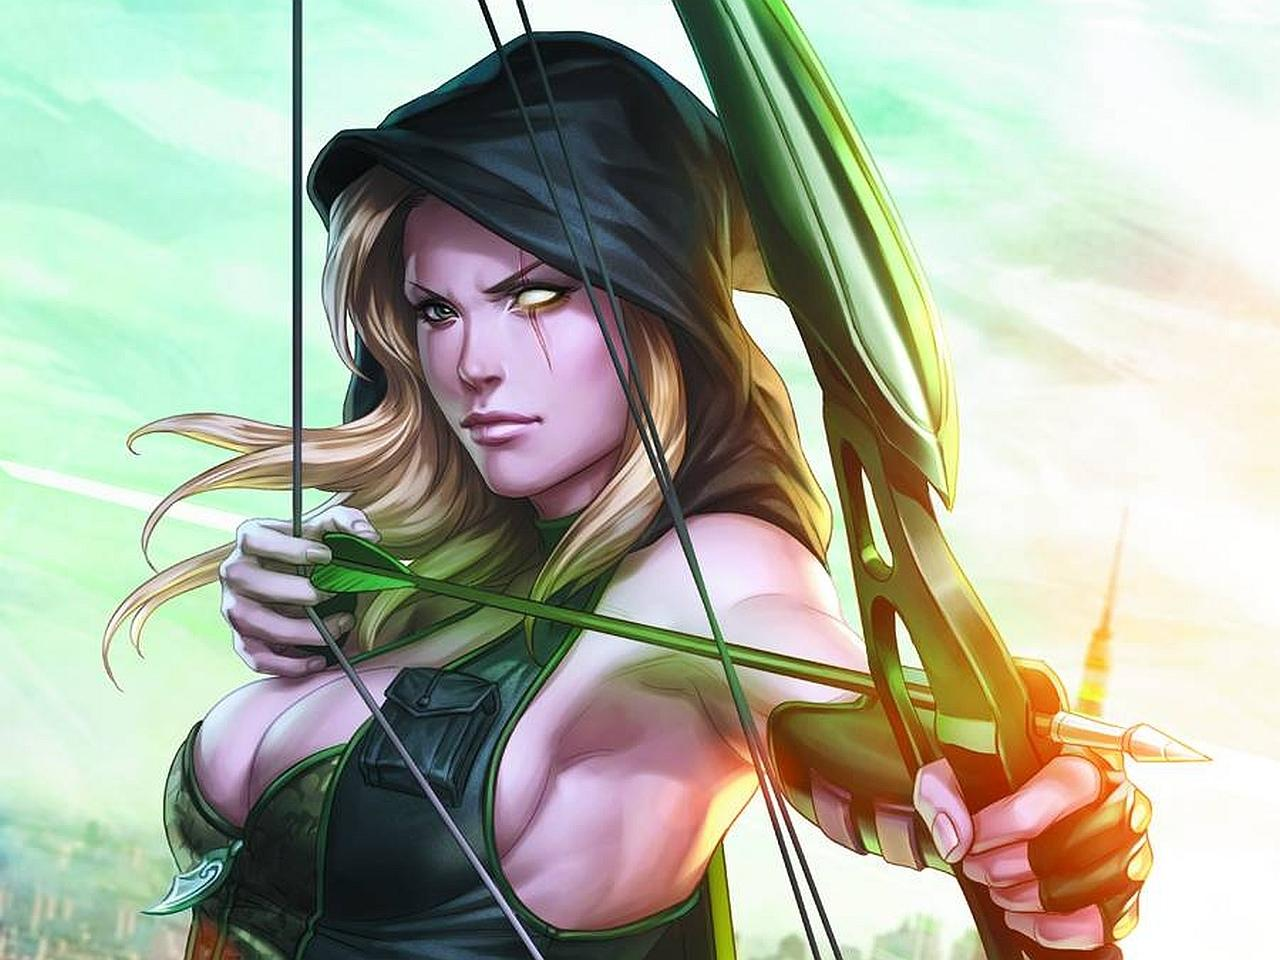 Grimm Fairy Tales Robyn Hood at 640 x 1136 iPhone 5 size wallpapers HD quality